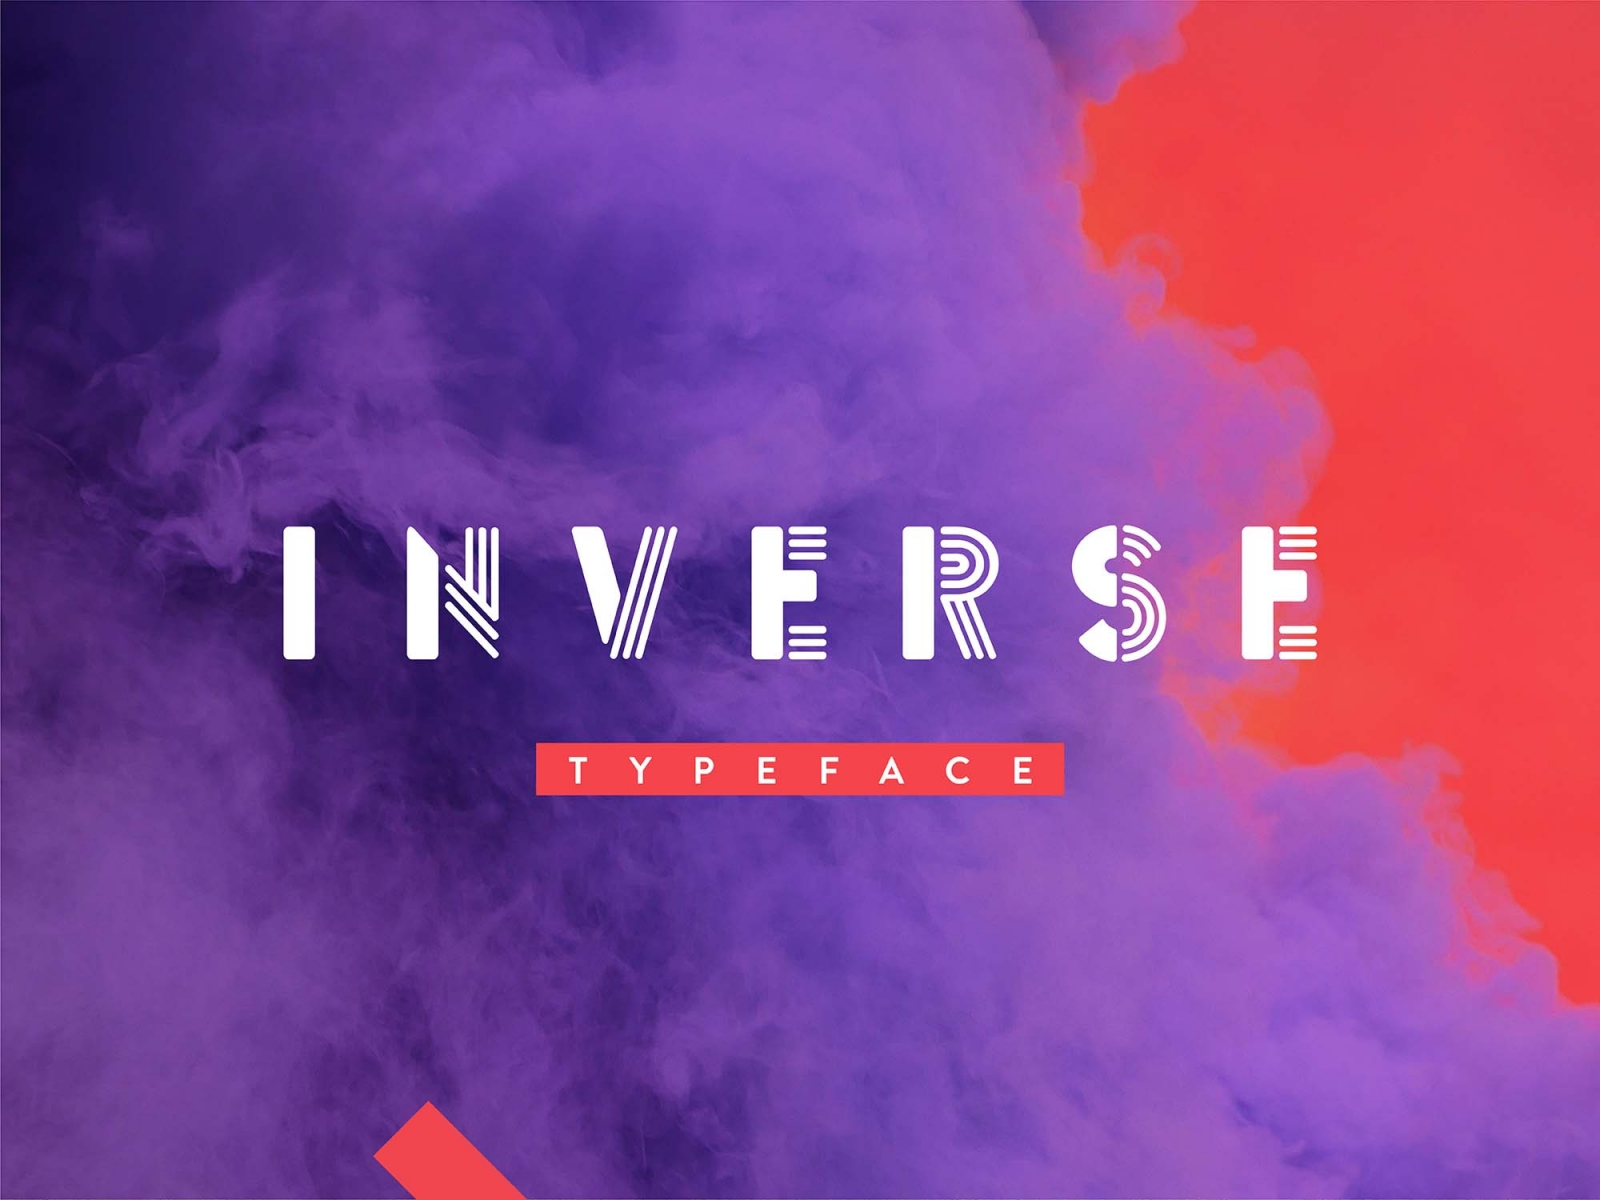 Free Inverse Display Font.